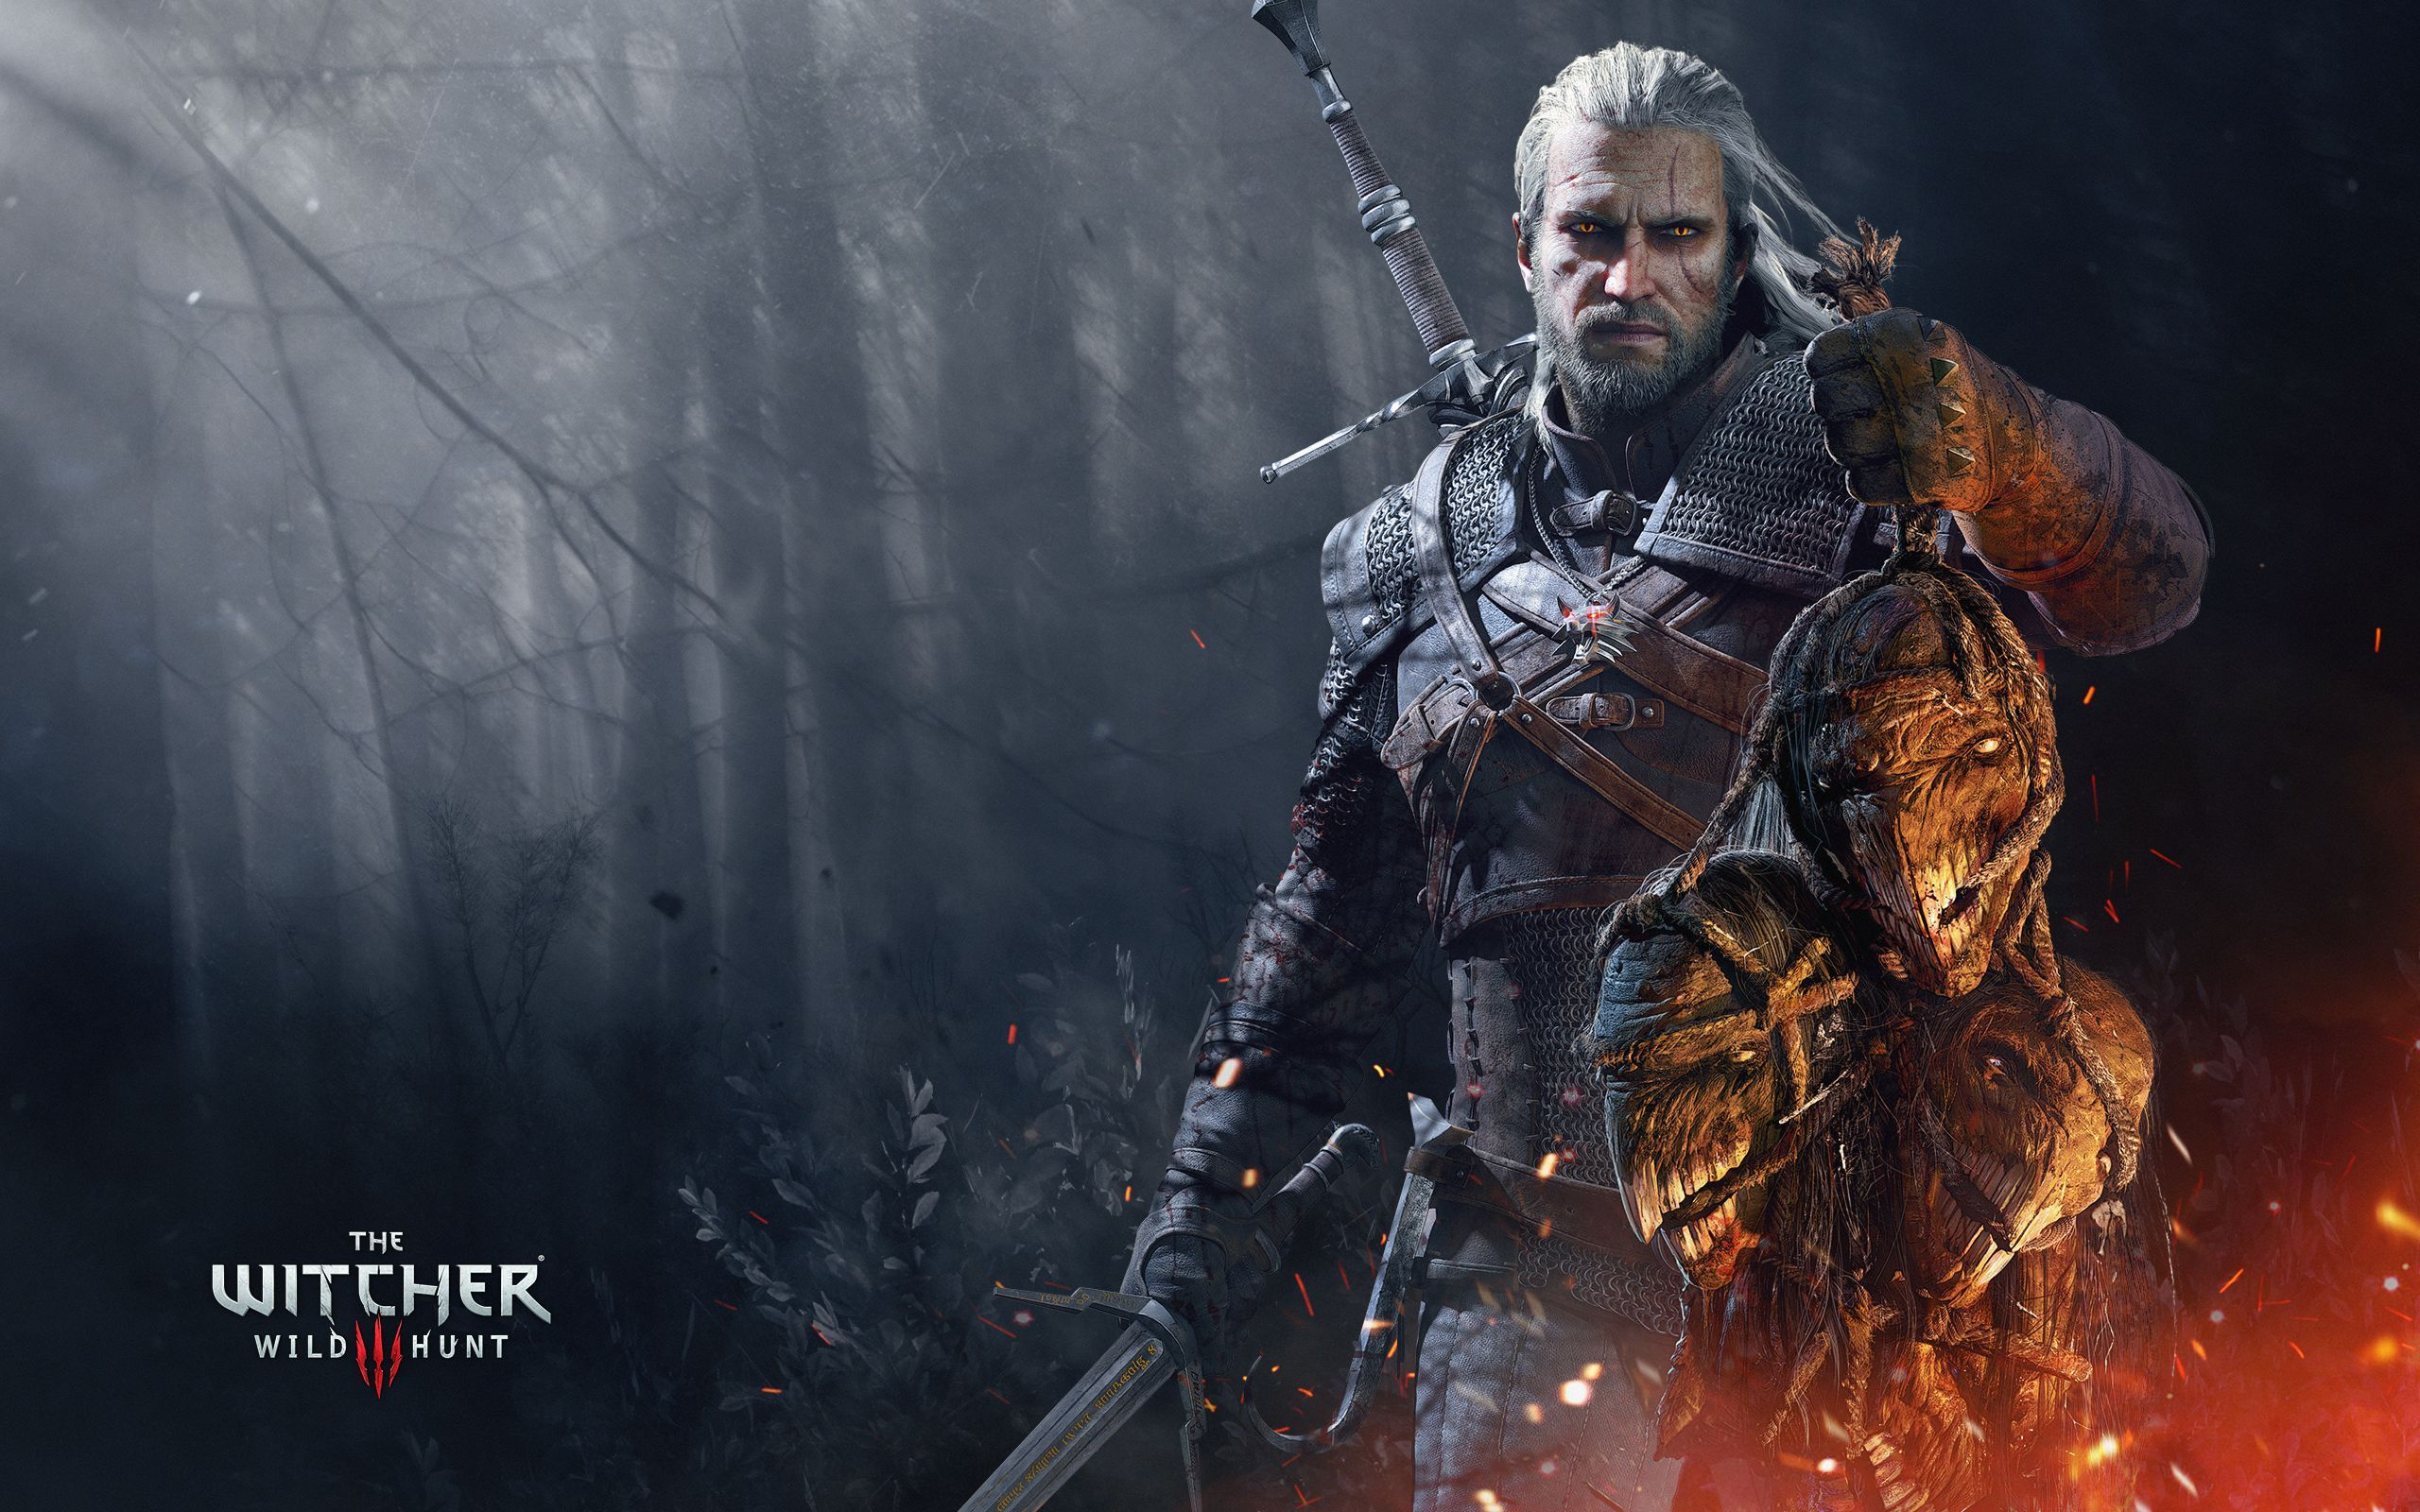 The Witcher 3 Wild Hunt Hd Wallpaper Imgur The Witcher 3 The Witcher The Witcher Wild Hunt